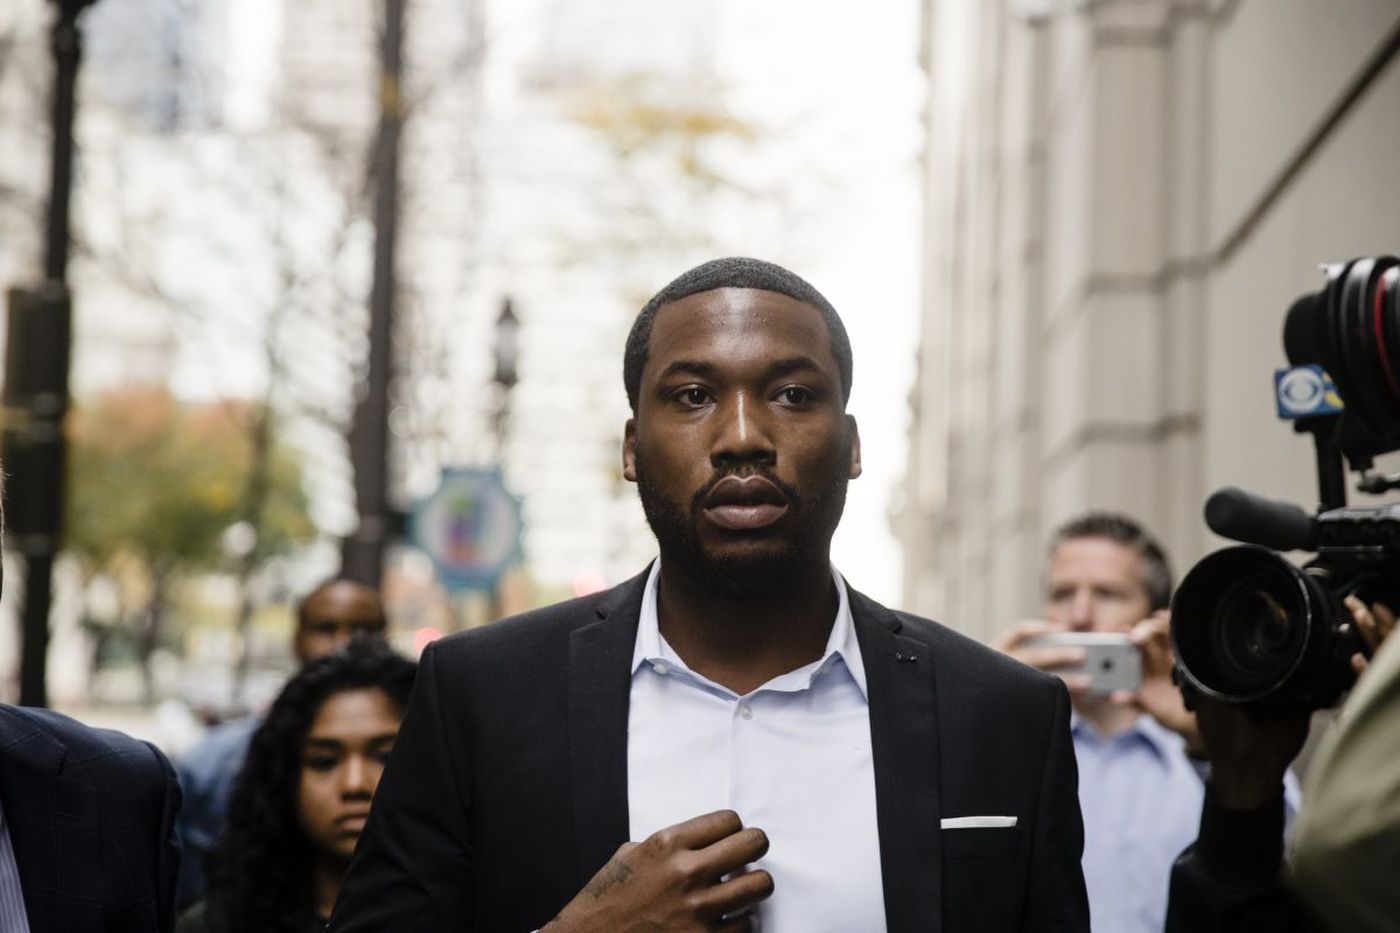 Meek Mill's billionaire defender: 'I've lost faith in the justice system'